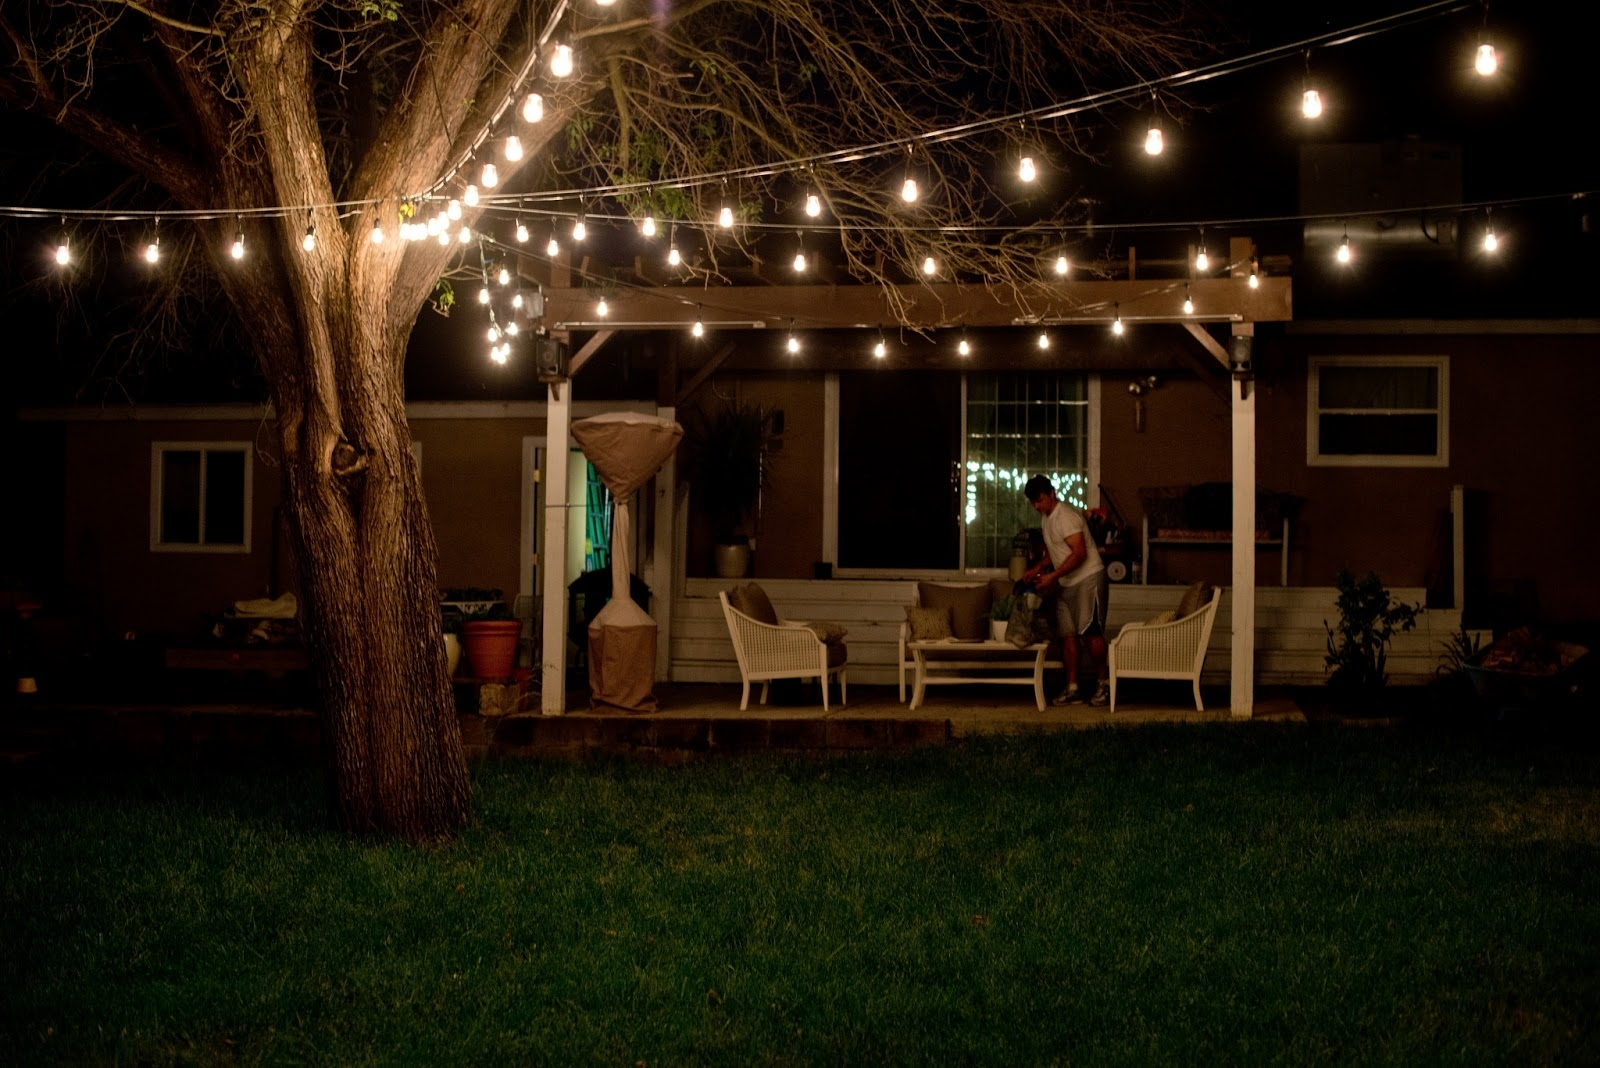 Incredible Hanging Patio Lights The Benefits Of Outdoor Patio Lights Throughout Newest Hanging Outdoor Lights In Backyard (Gallery 9 of 20)